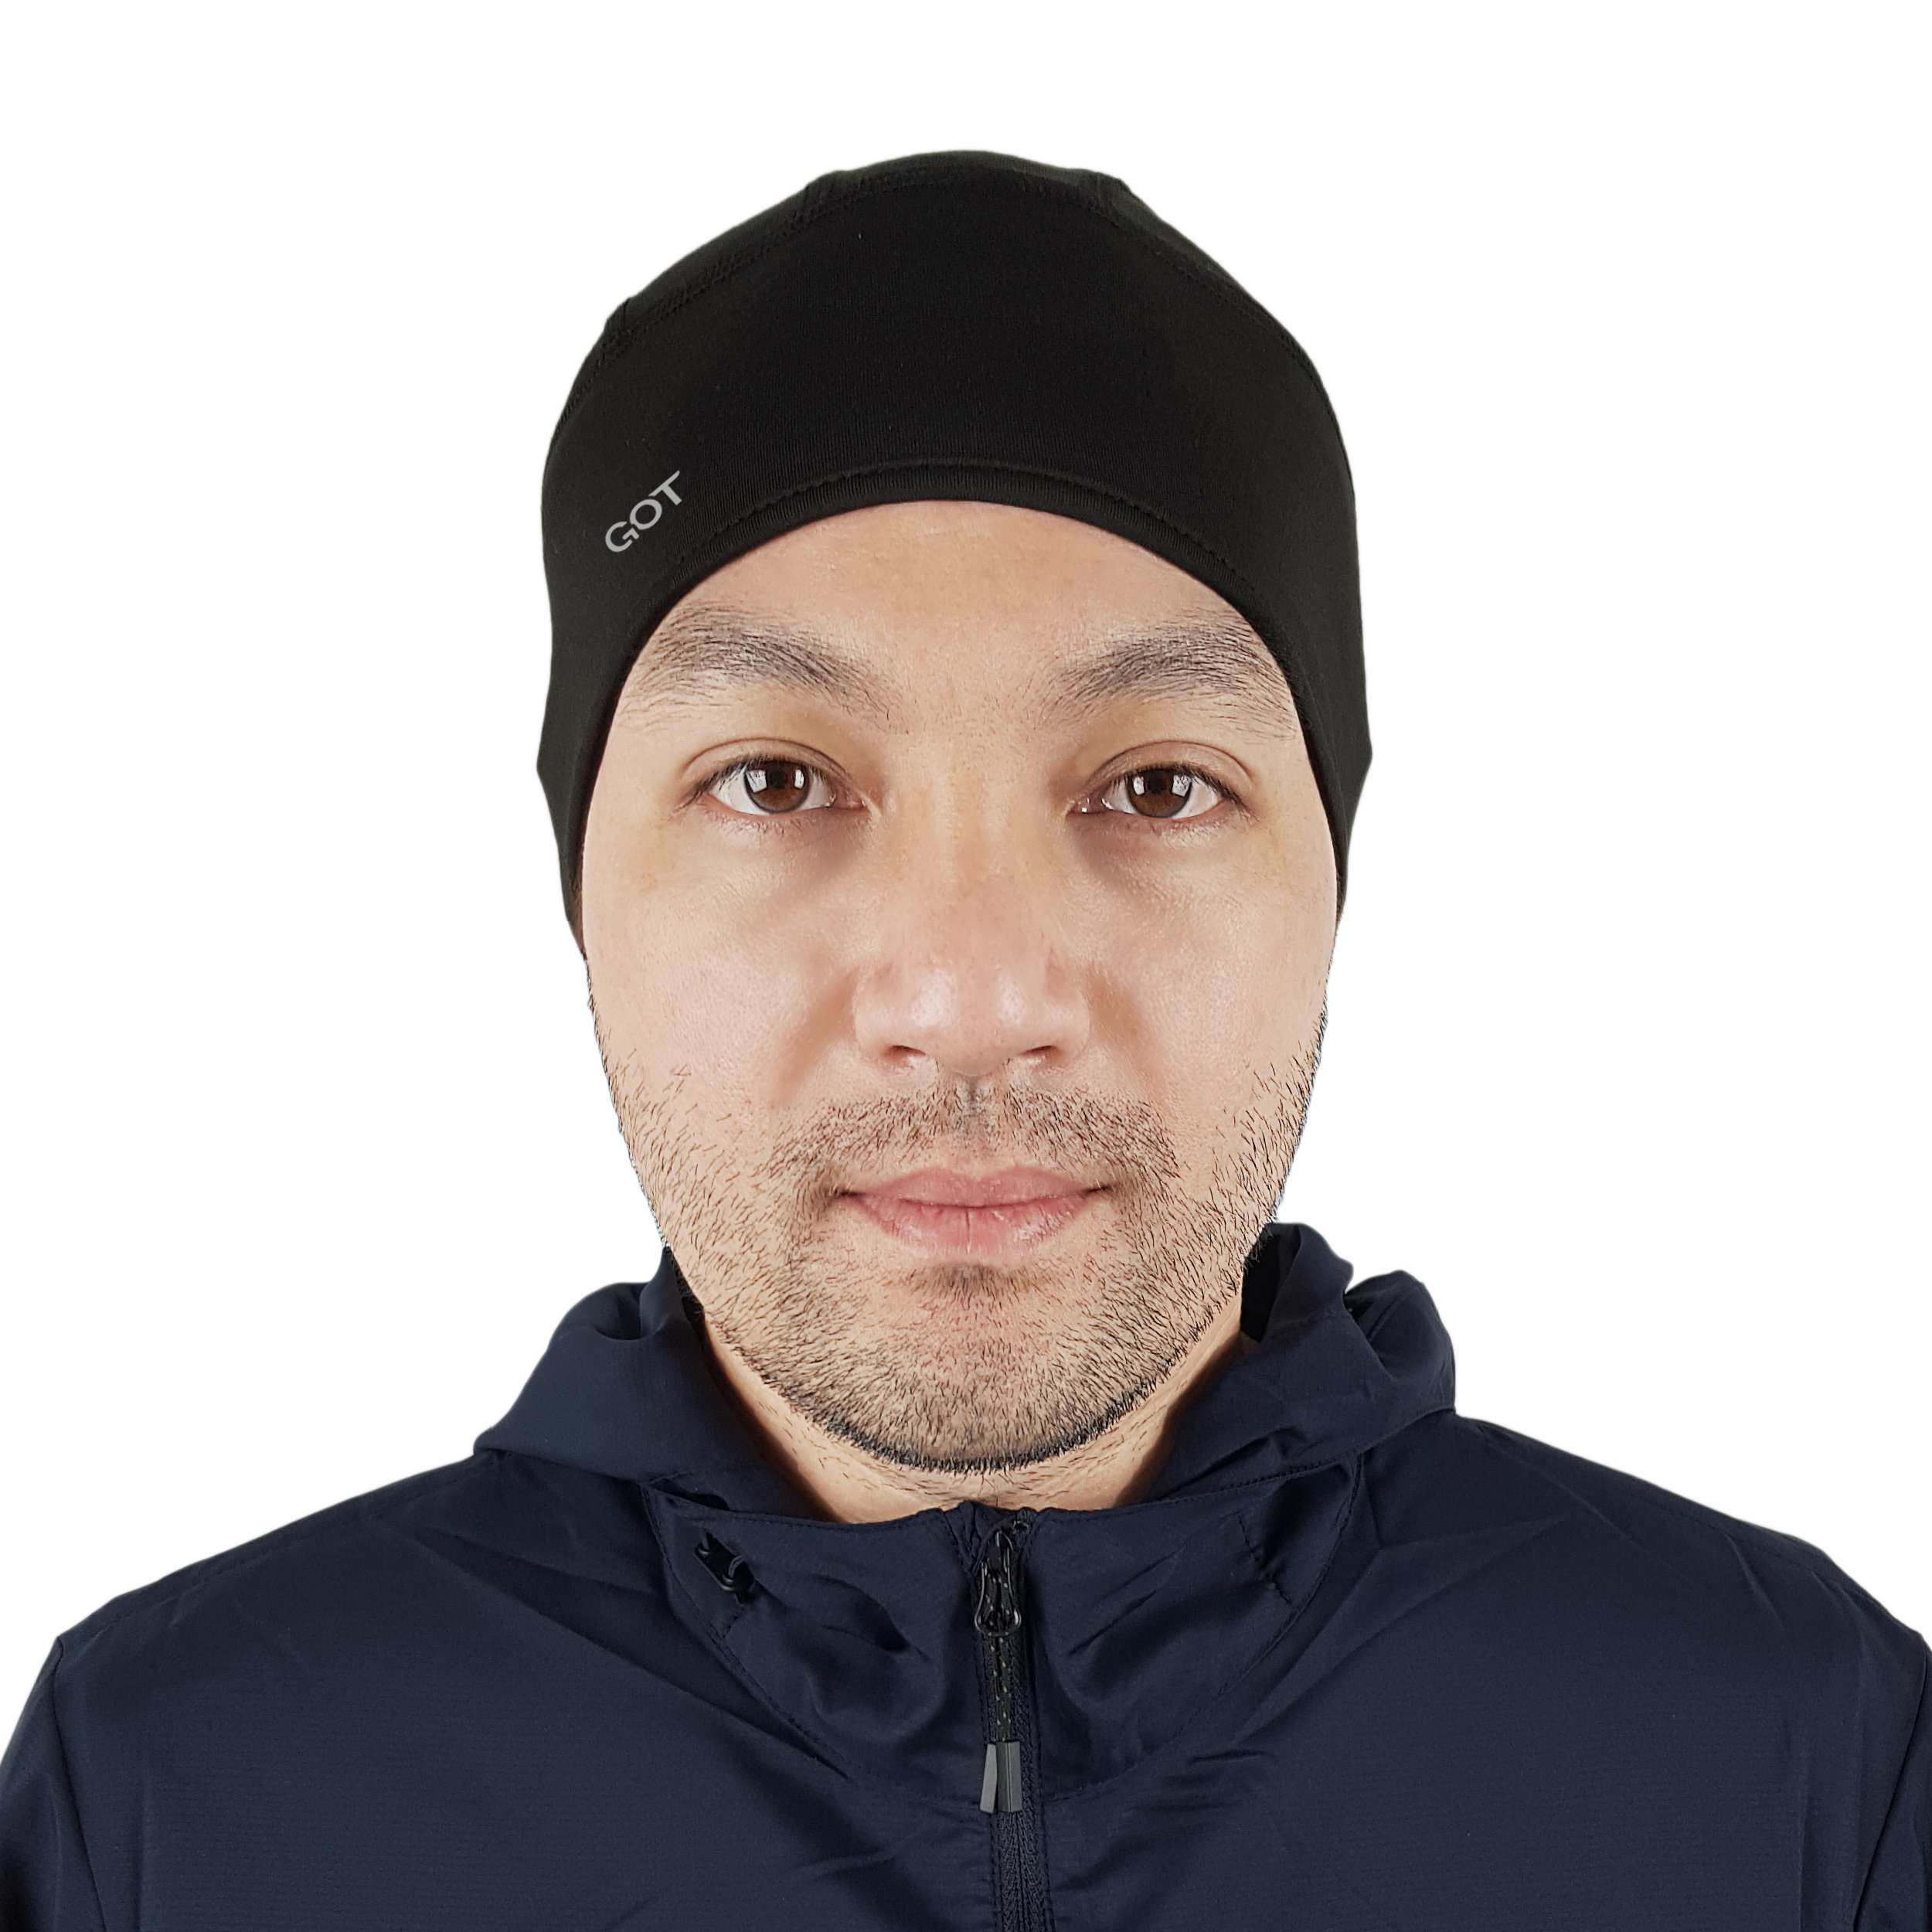 GOT Sports Skull Cap/Helmet Liner/Beanie for Running, Cycling, Motorcycle Riding, Skiing. Thermal Retention and Moisture Wicking Technology by GOT Sports (Image #2)